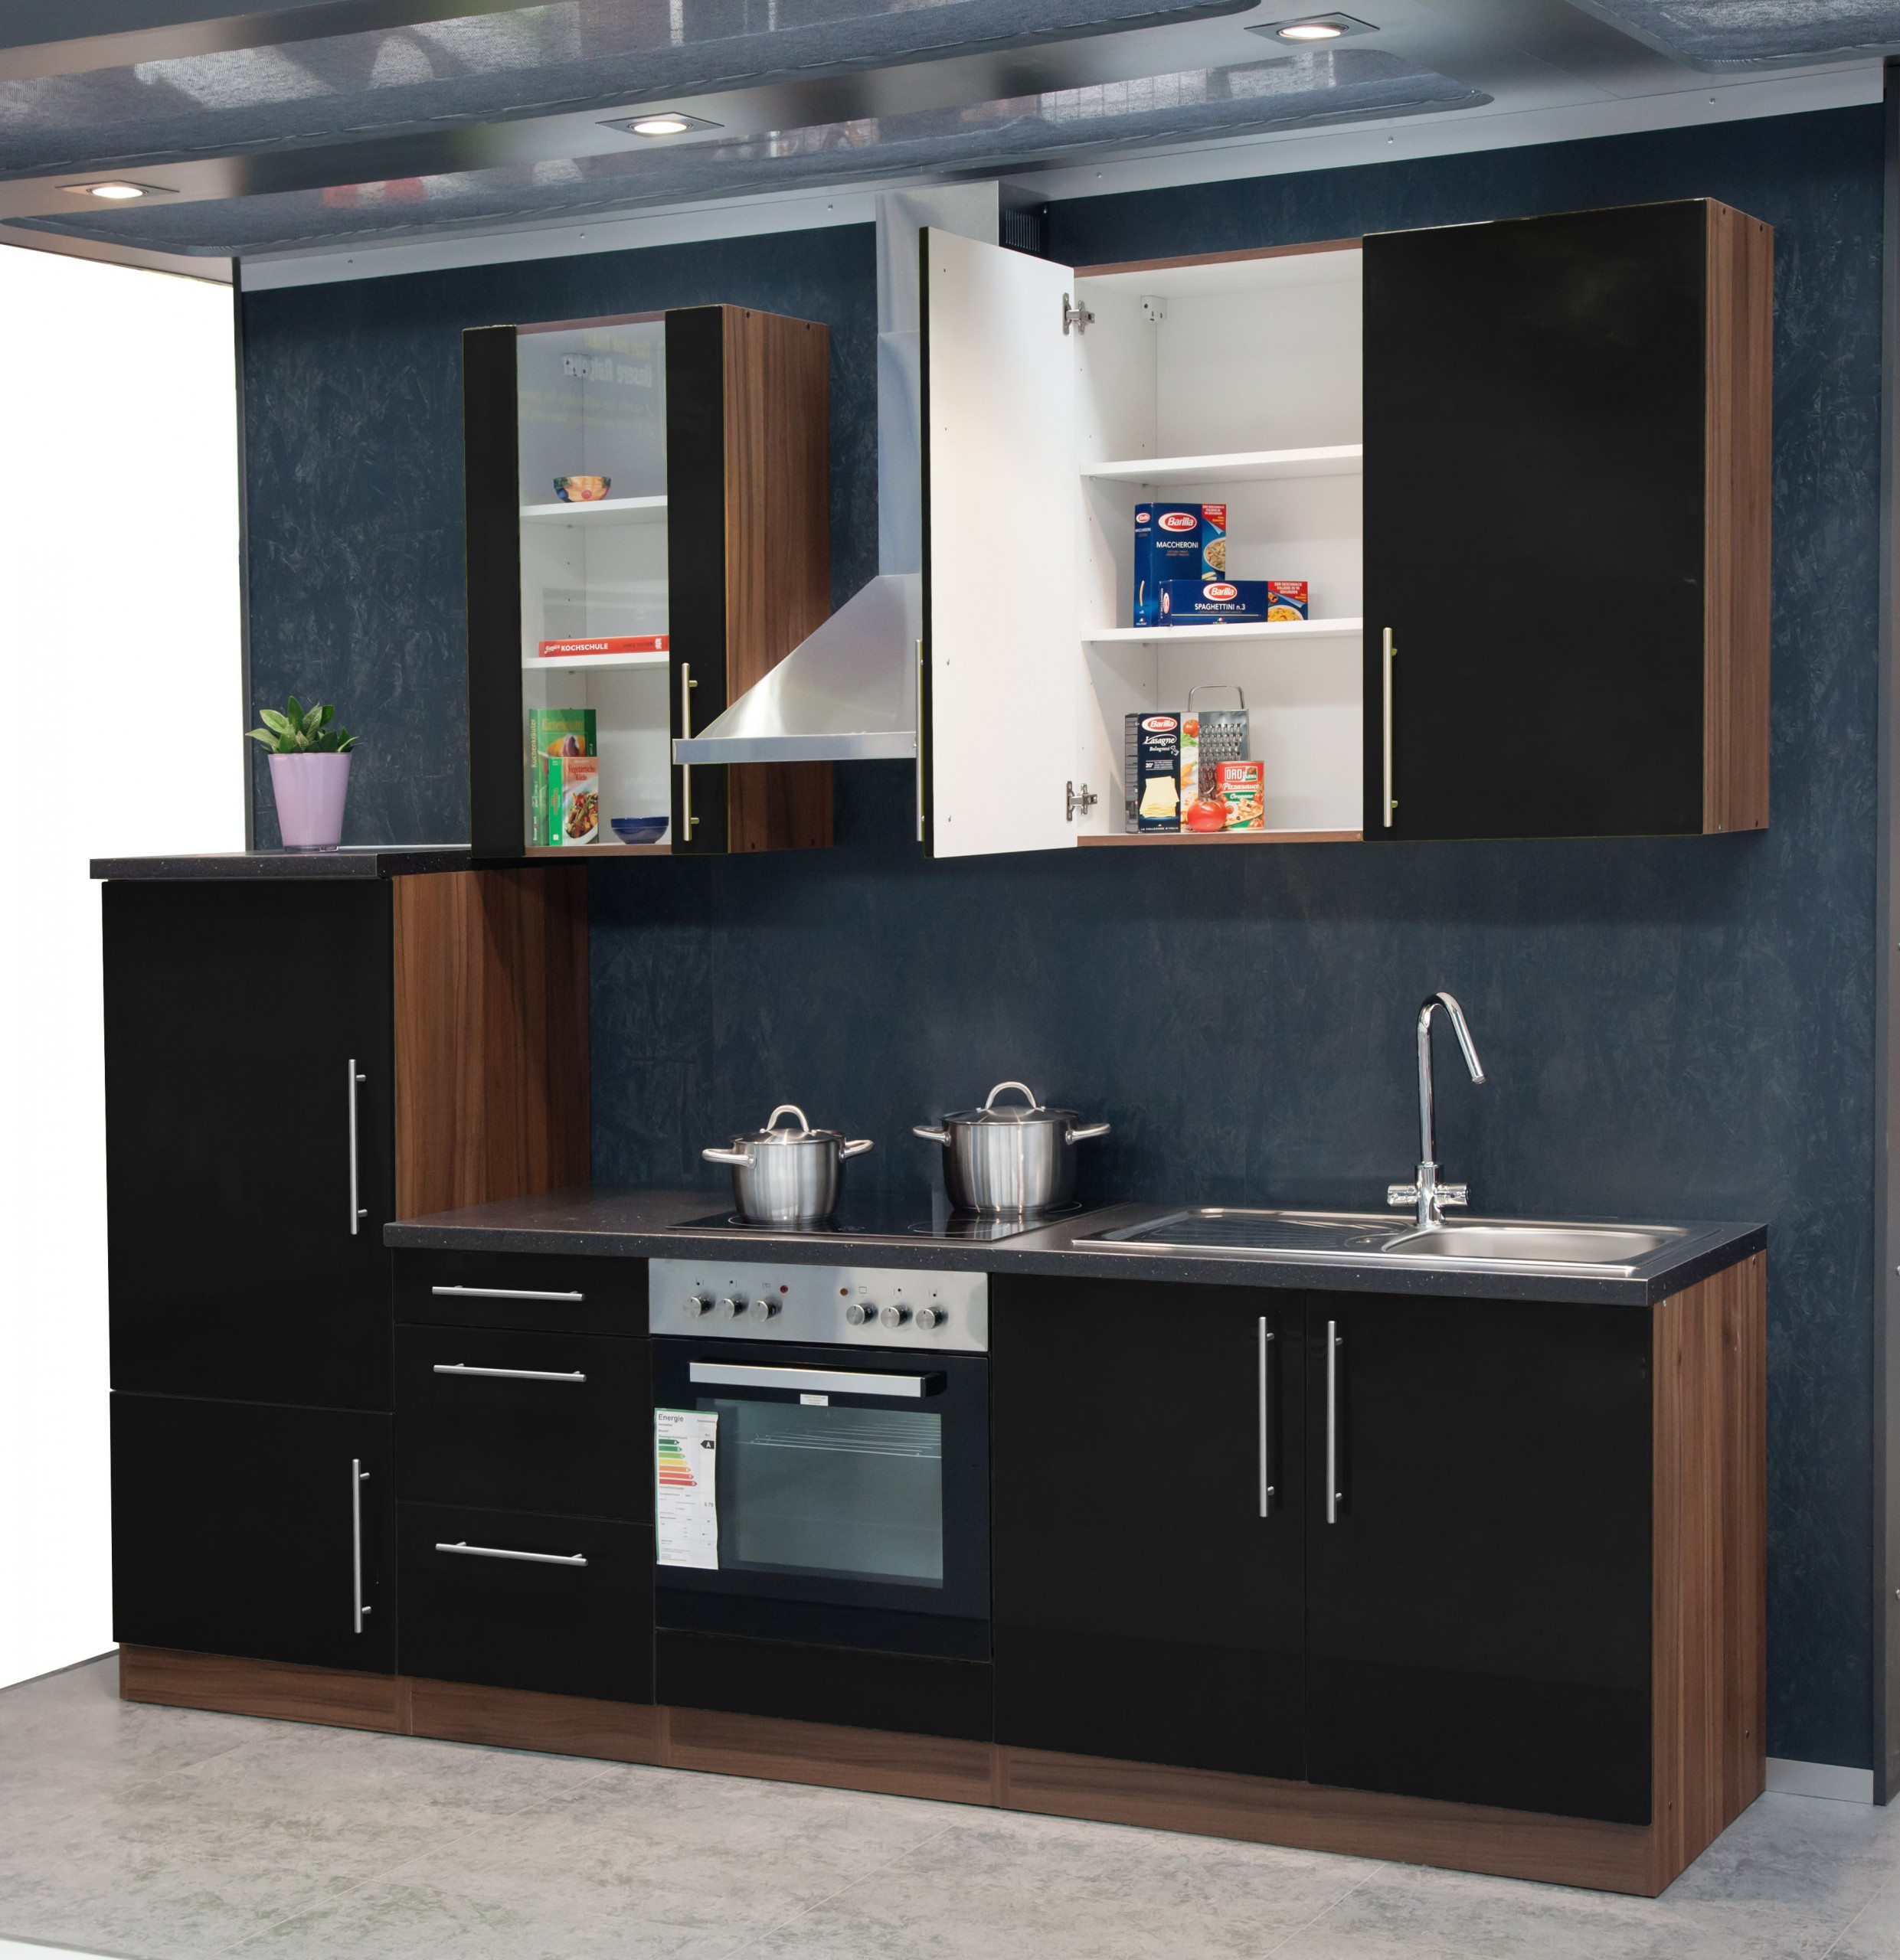 k chenzeile 270 cm mebasa hochglanzfronten in schwarz und korpus in nussbaum mit e ger ten. Black Bedroom Furniture Sets. Home Design Ideas